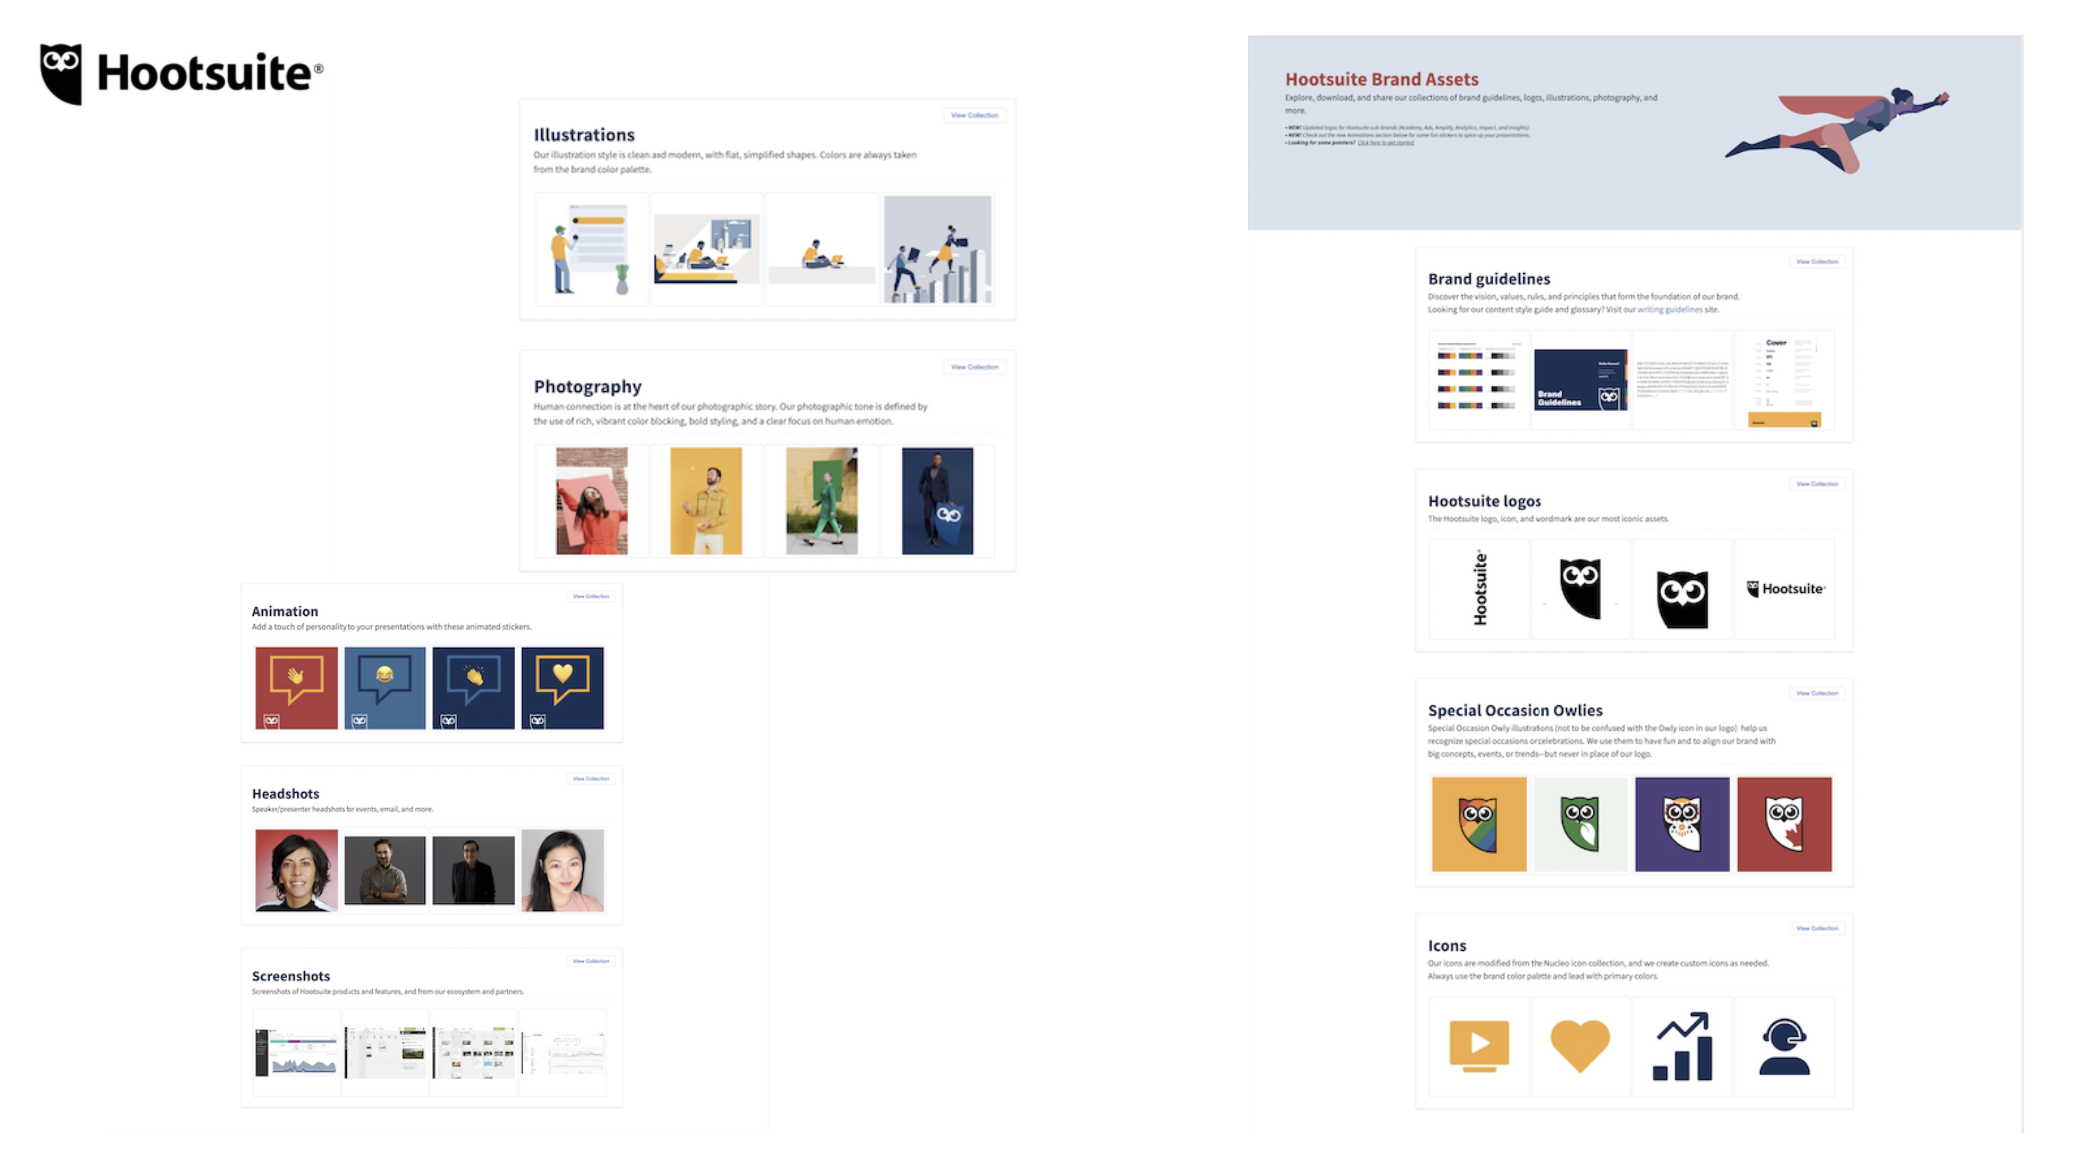 A look at Hootsuite's brand assets portal.